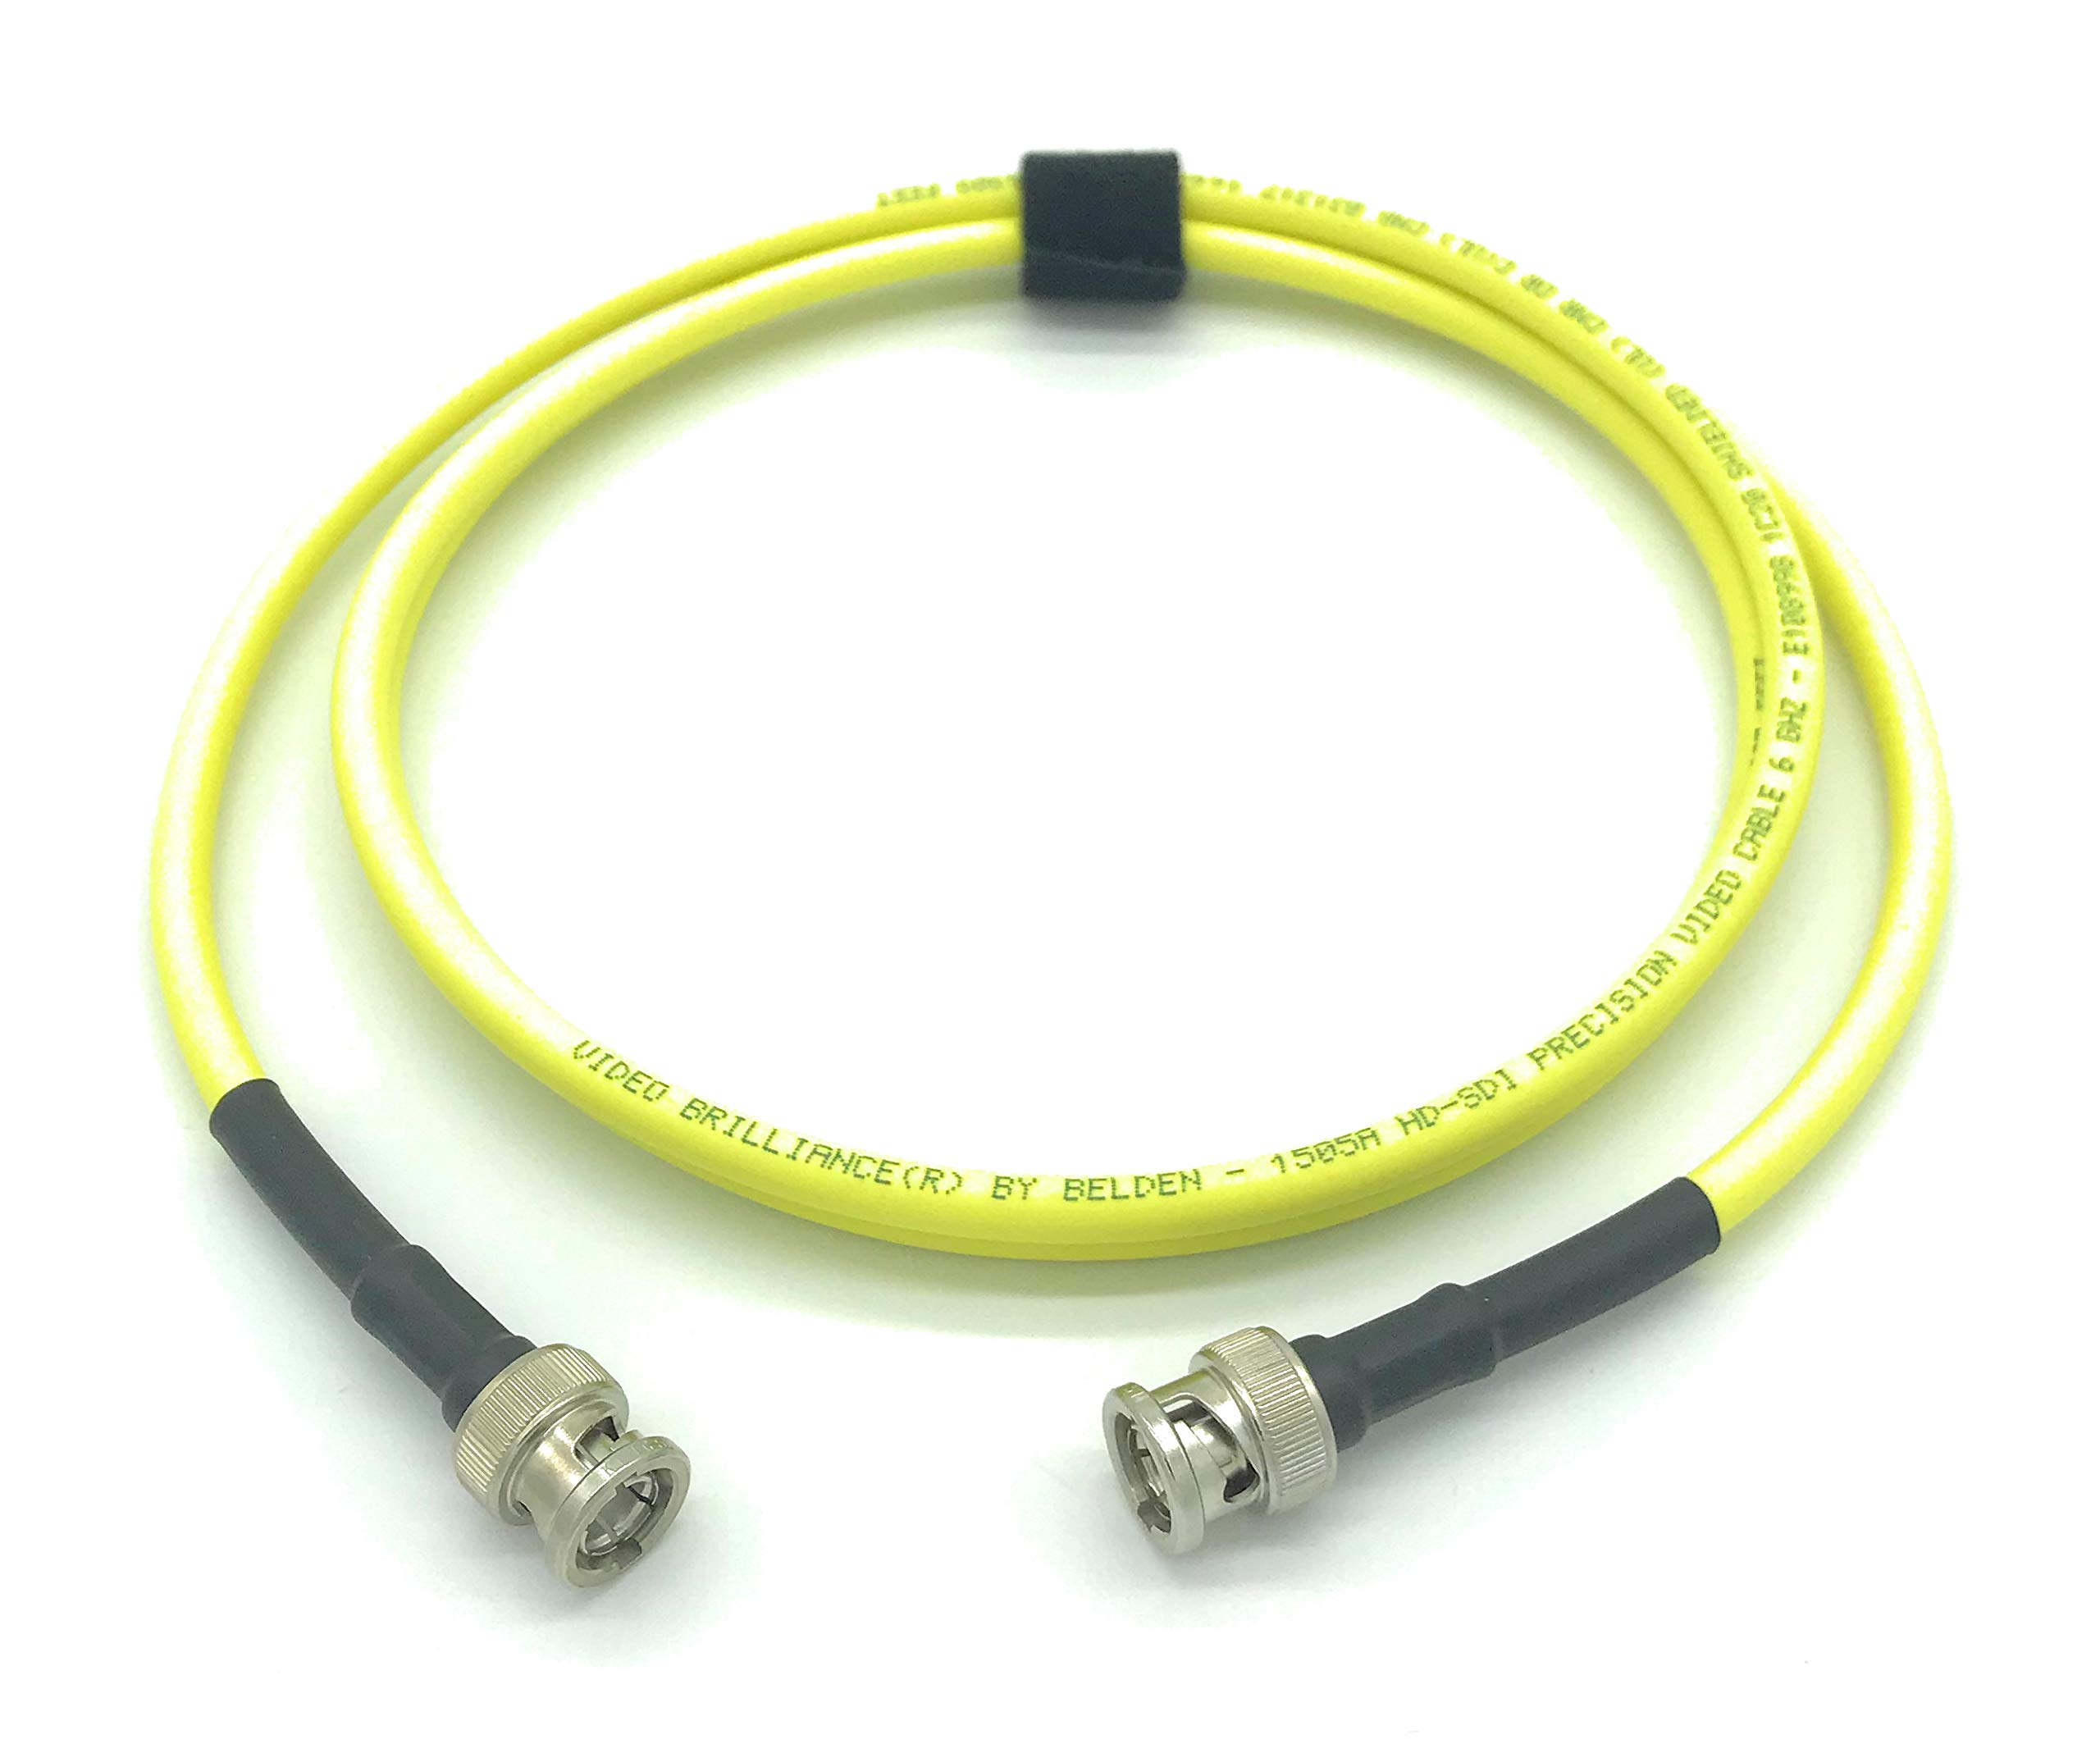 200ft AV-Cables 3G/6G HD SDI BNC Cable Belden 1505A RG59 - Yellow (200ft)